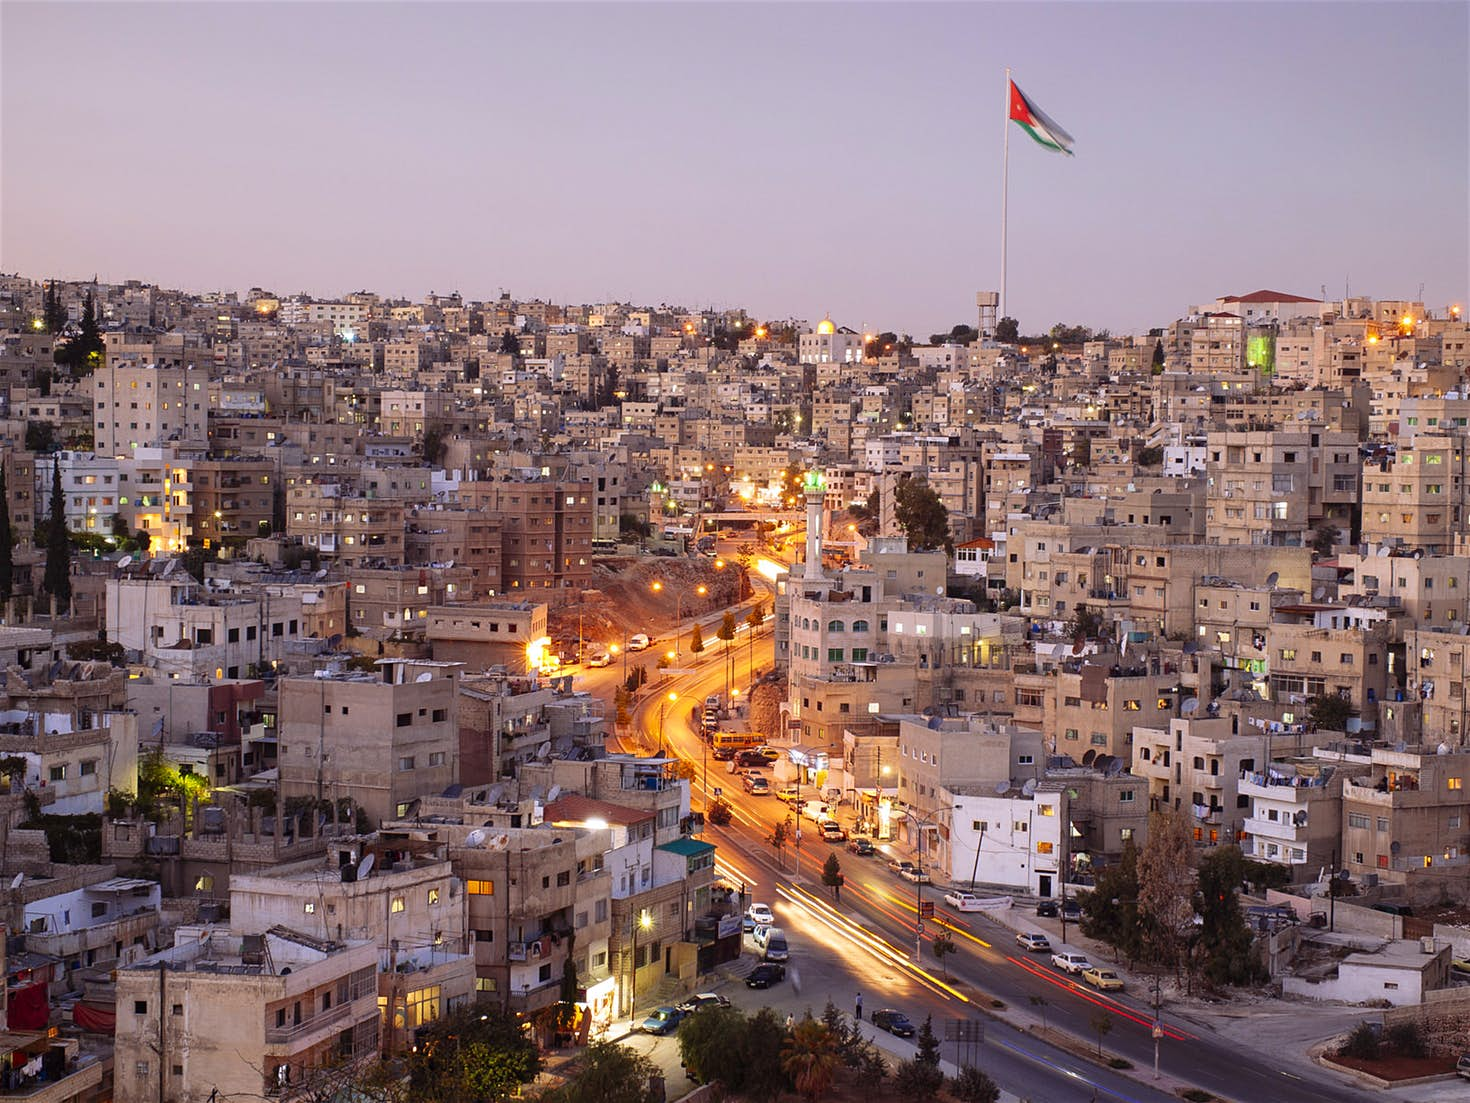 View of Amman from Citadel Hill - Amos Chapple - Getty Images.jpg